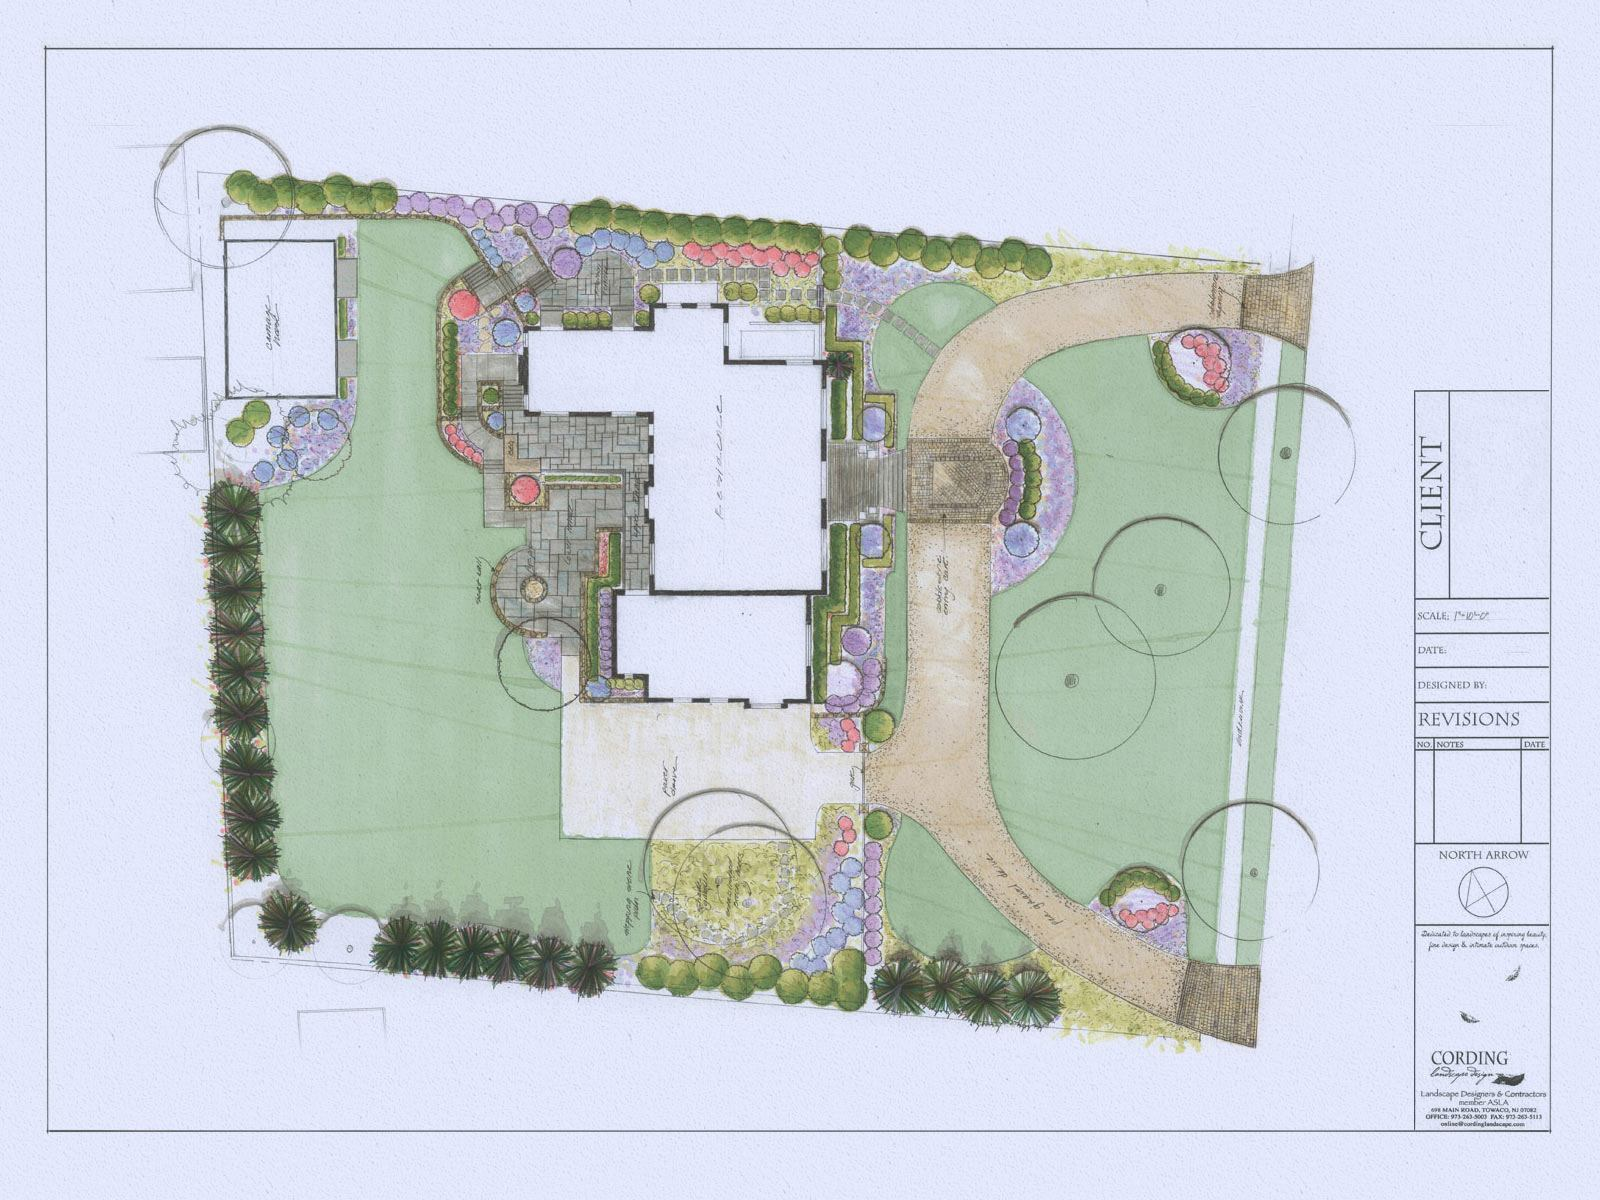 Landscape Plan by Cording Landscape Design in New Jersey